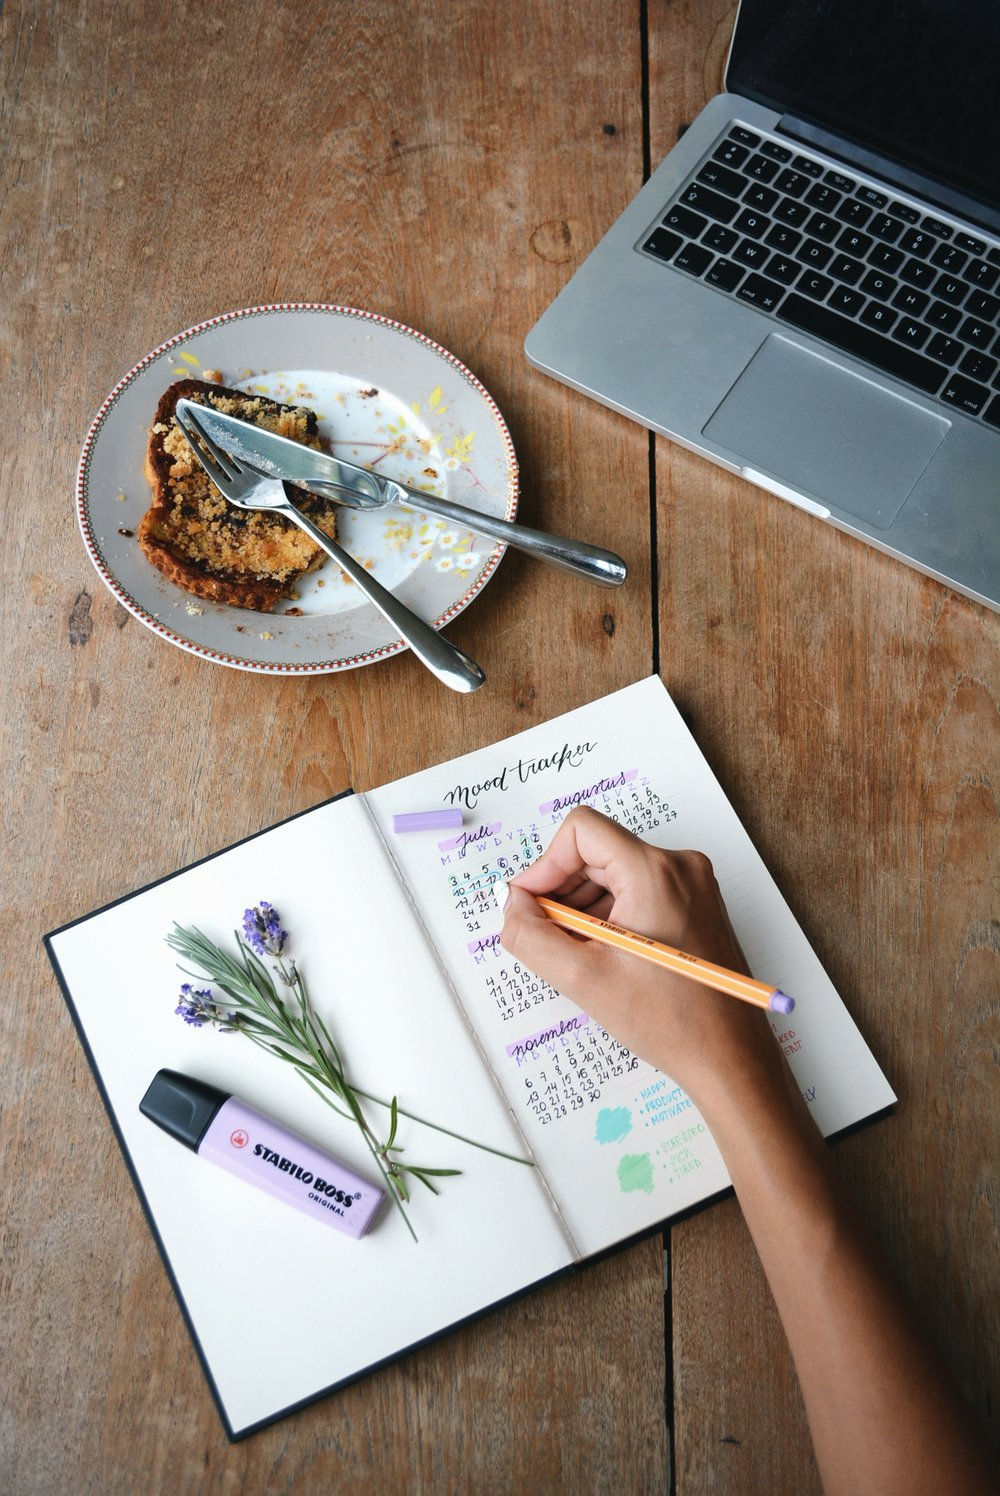 This is a stock photo, and I chose it because it's filled with some of my favorite things: purple and green, flowers, a piece of yummy bread or cake, a rough-hewn table, a pen and marker, and a laptop. I don't use a Mood Tracker, but if I did, I would get this one because I love how it looks. Photo credit:  Estée Janssens  on  Unsplash .